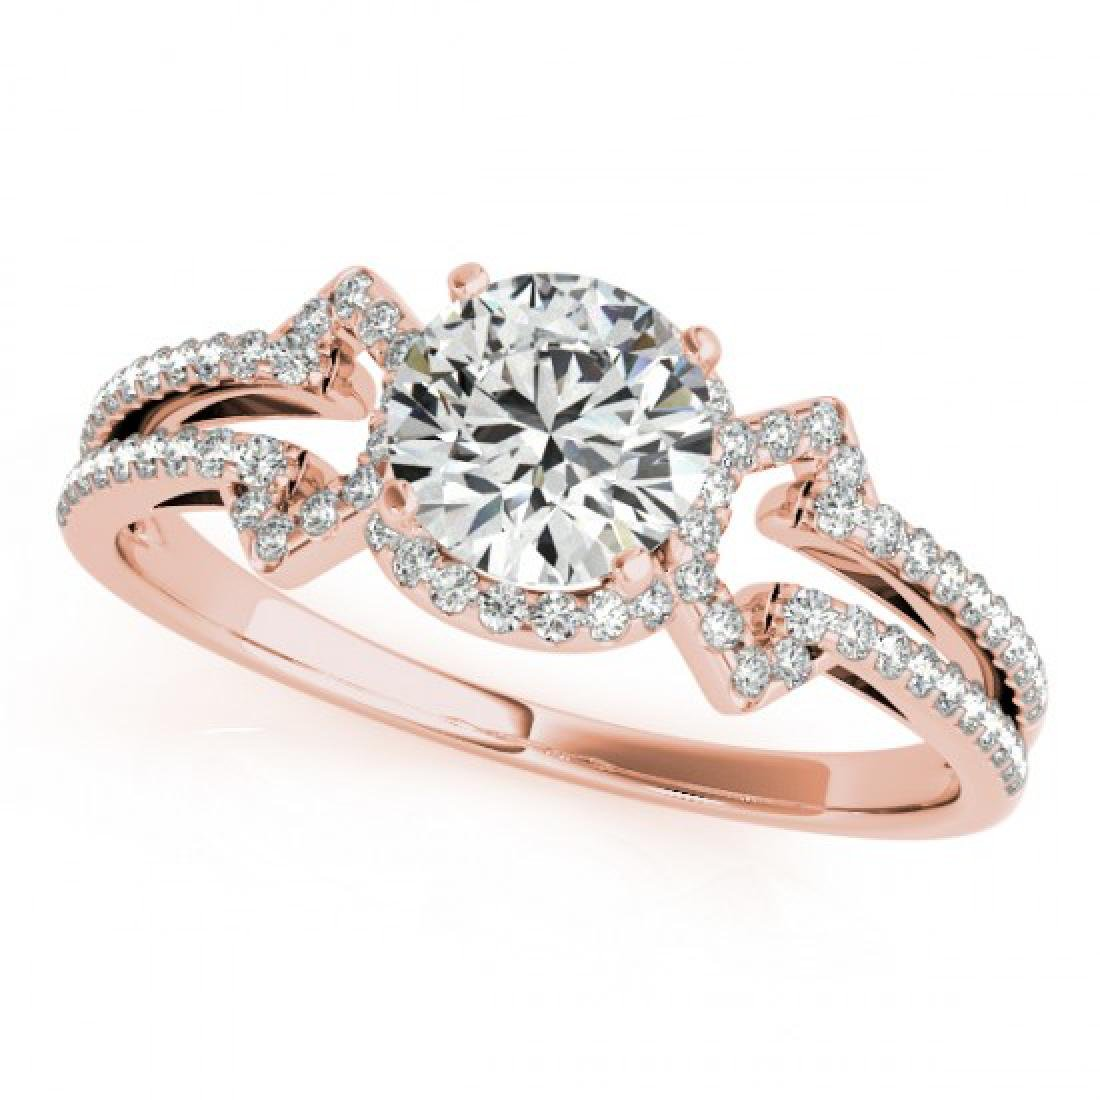 1.11 CTW Certified VS/SI Diamond Solitaire Ring 14K